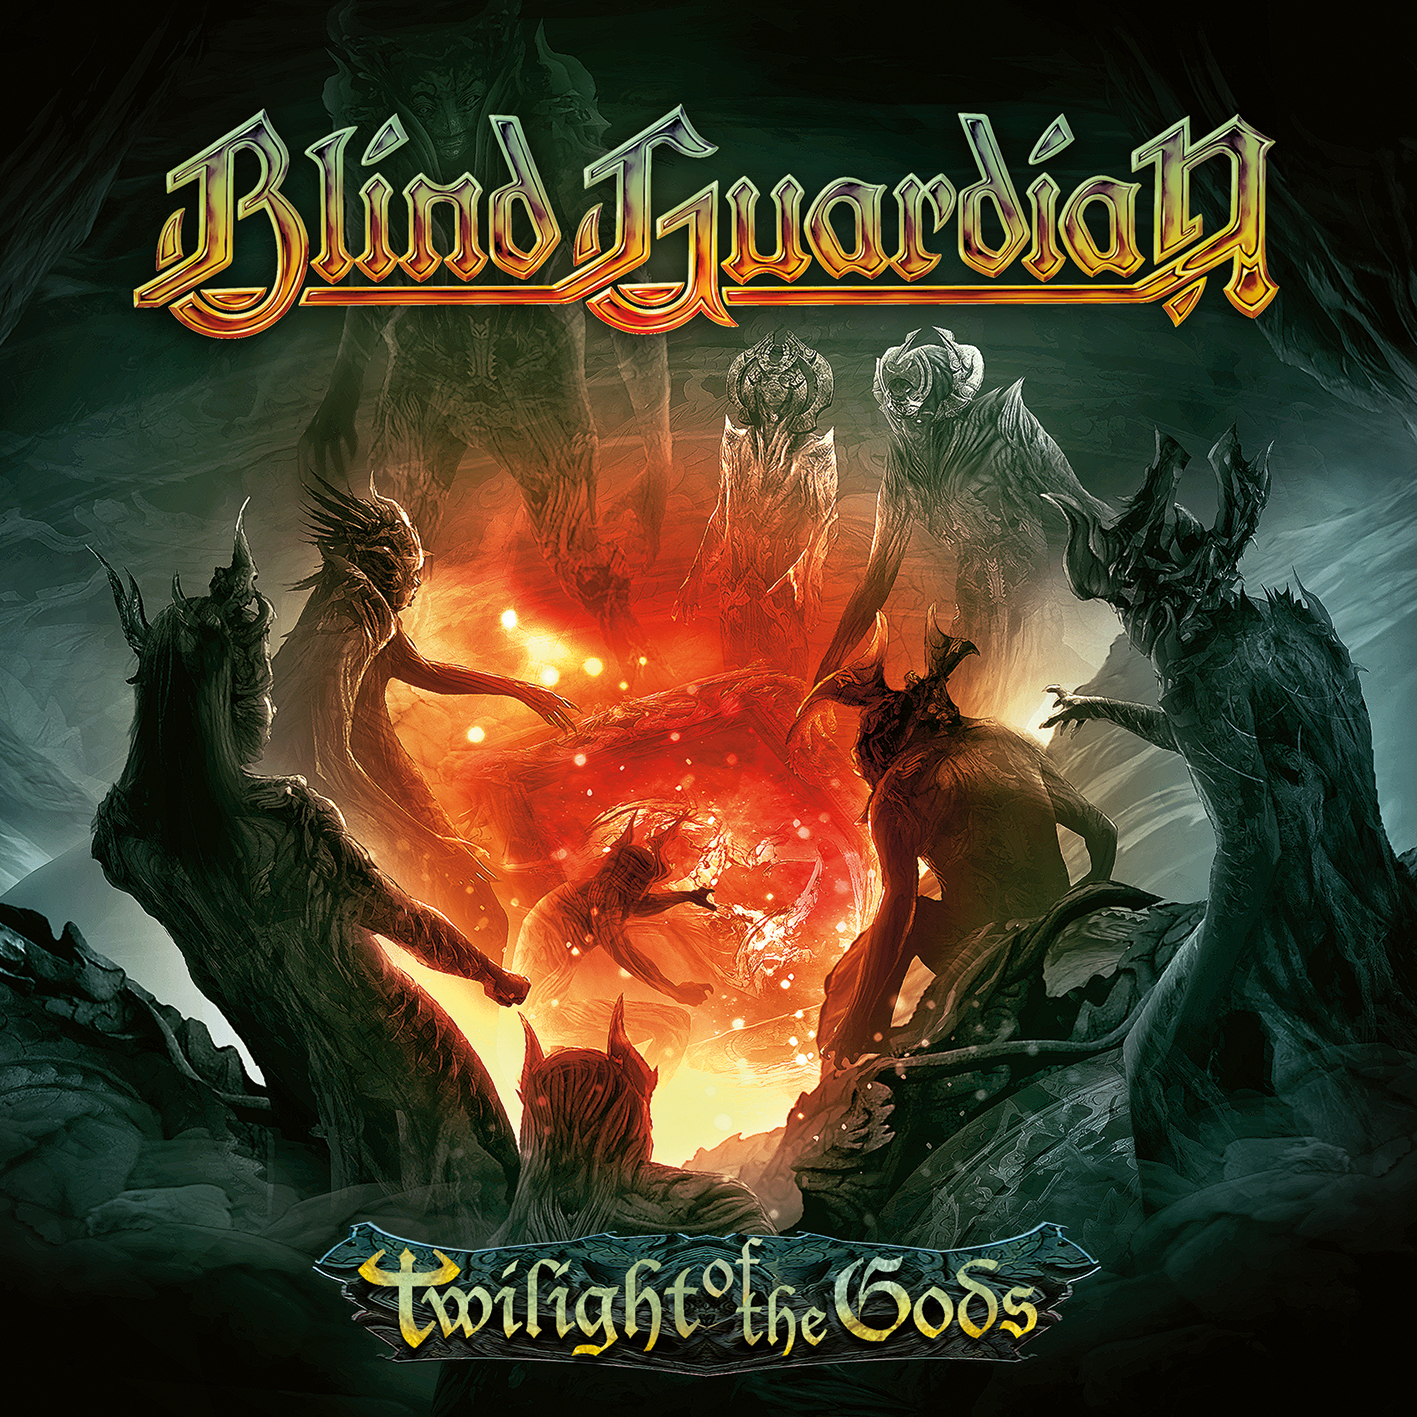 Twilight of the gods en blind for Mirror mirror blind guardian lyrics